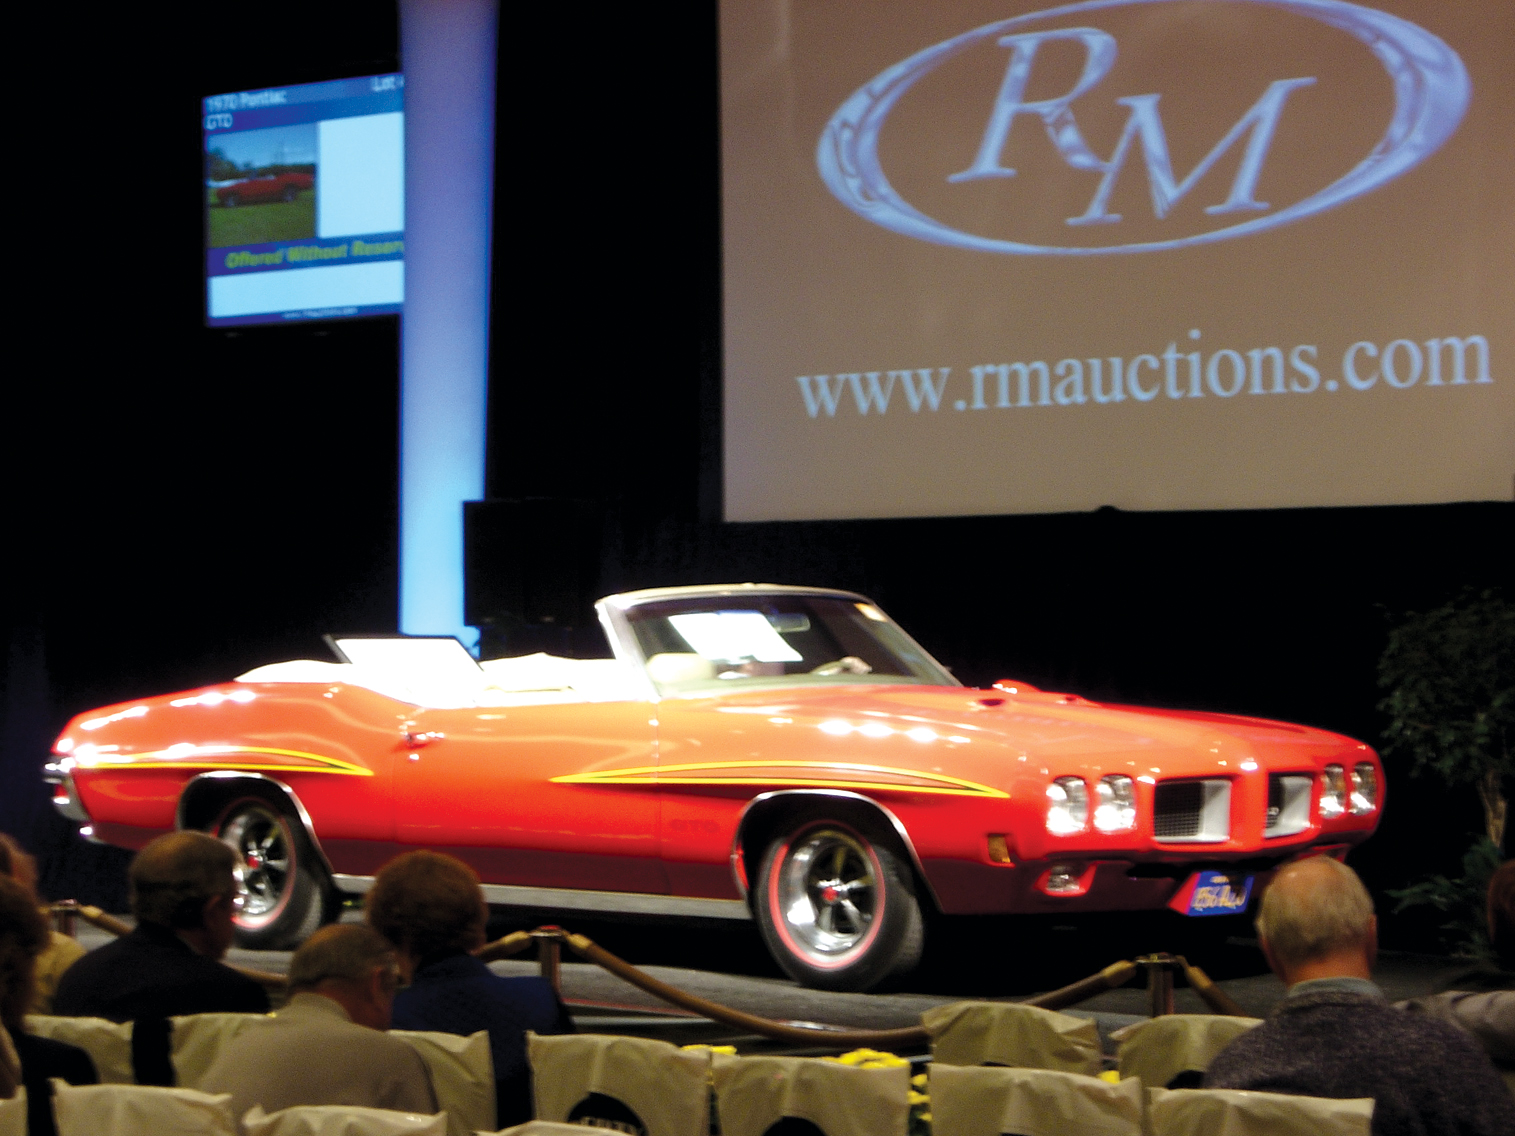 Barrett-Jackson—The Automobile Addiction